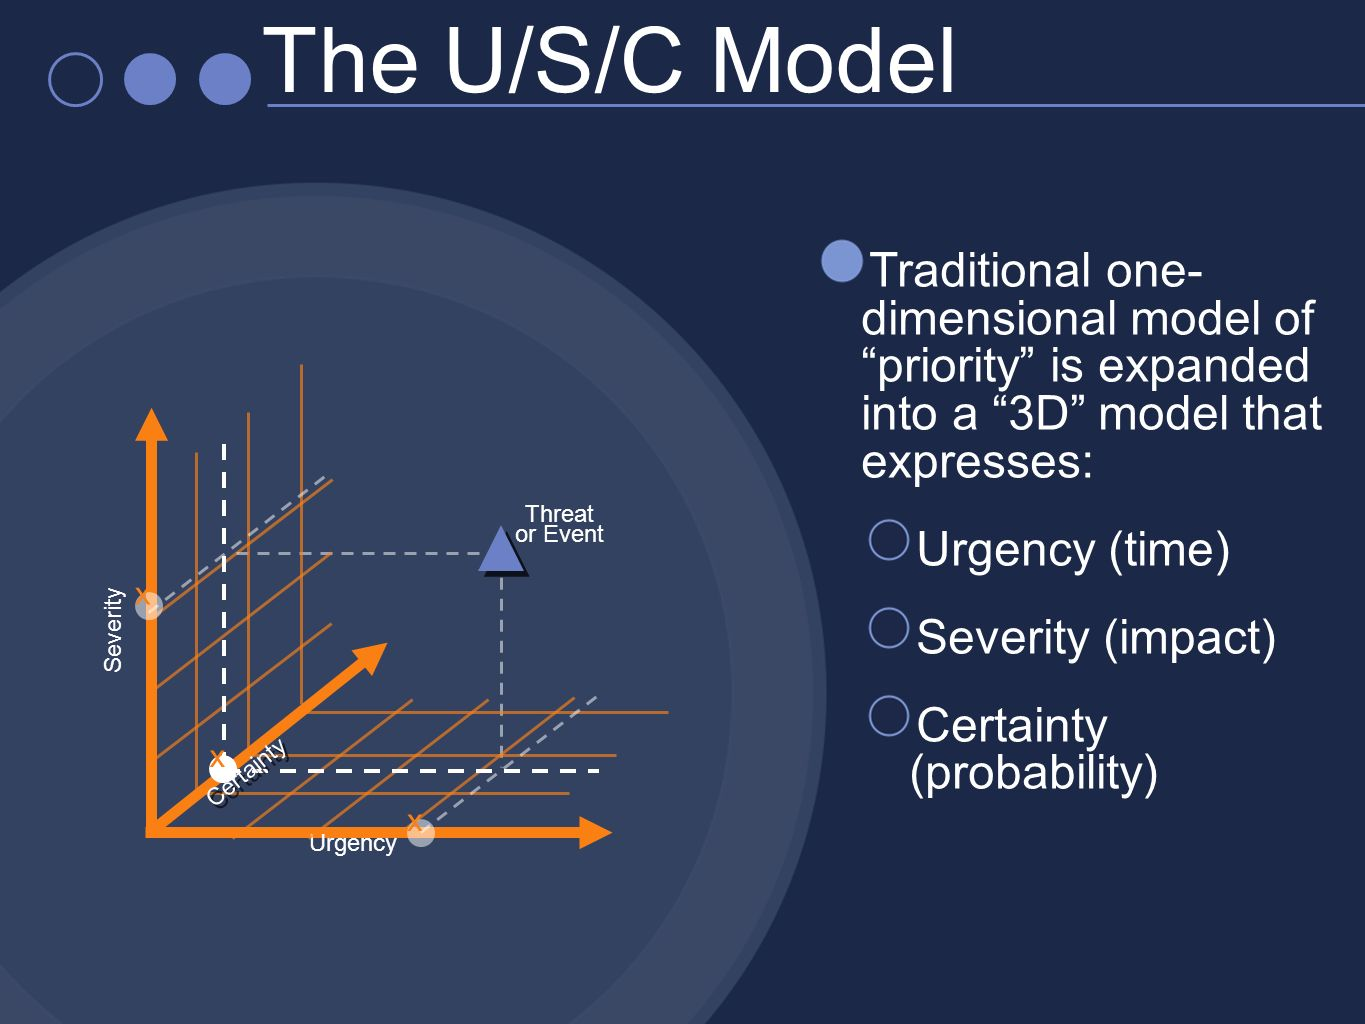 Traditional one- dimensional model of priority is expanded into a 3D model that expresses: Urgency (time) Severity (impact) Certainty (probability) Urgency Severity Threat or Event x x x Certainty The U/S/C Model